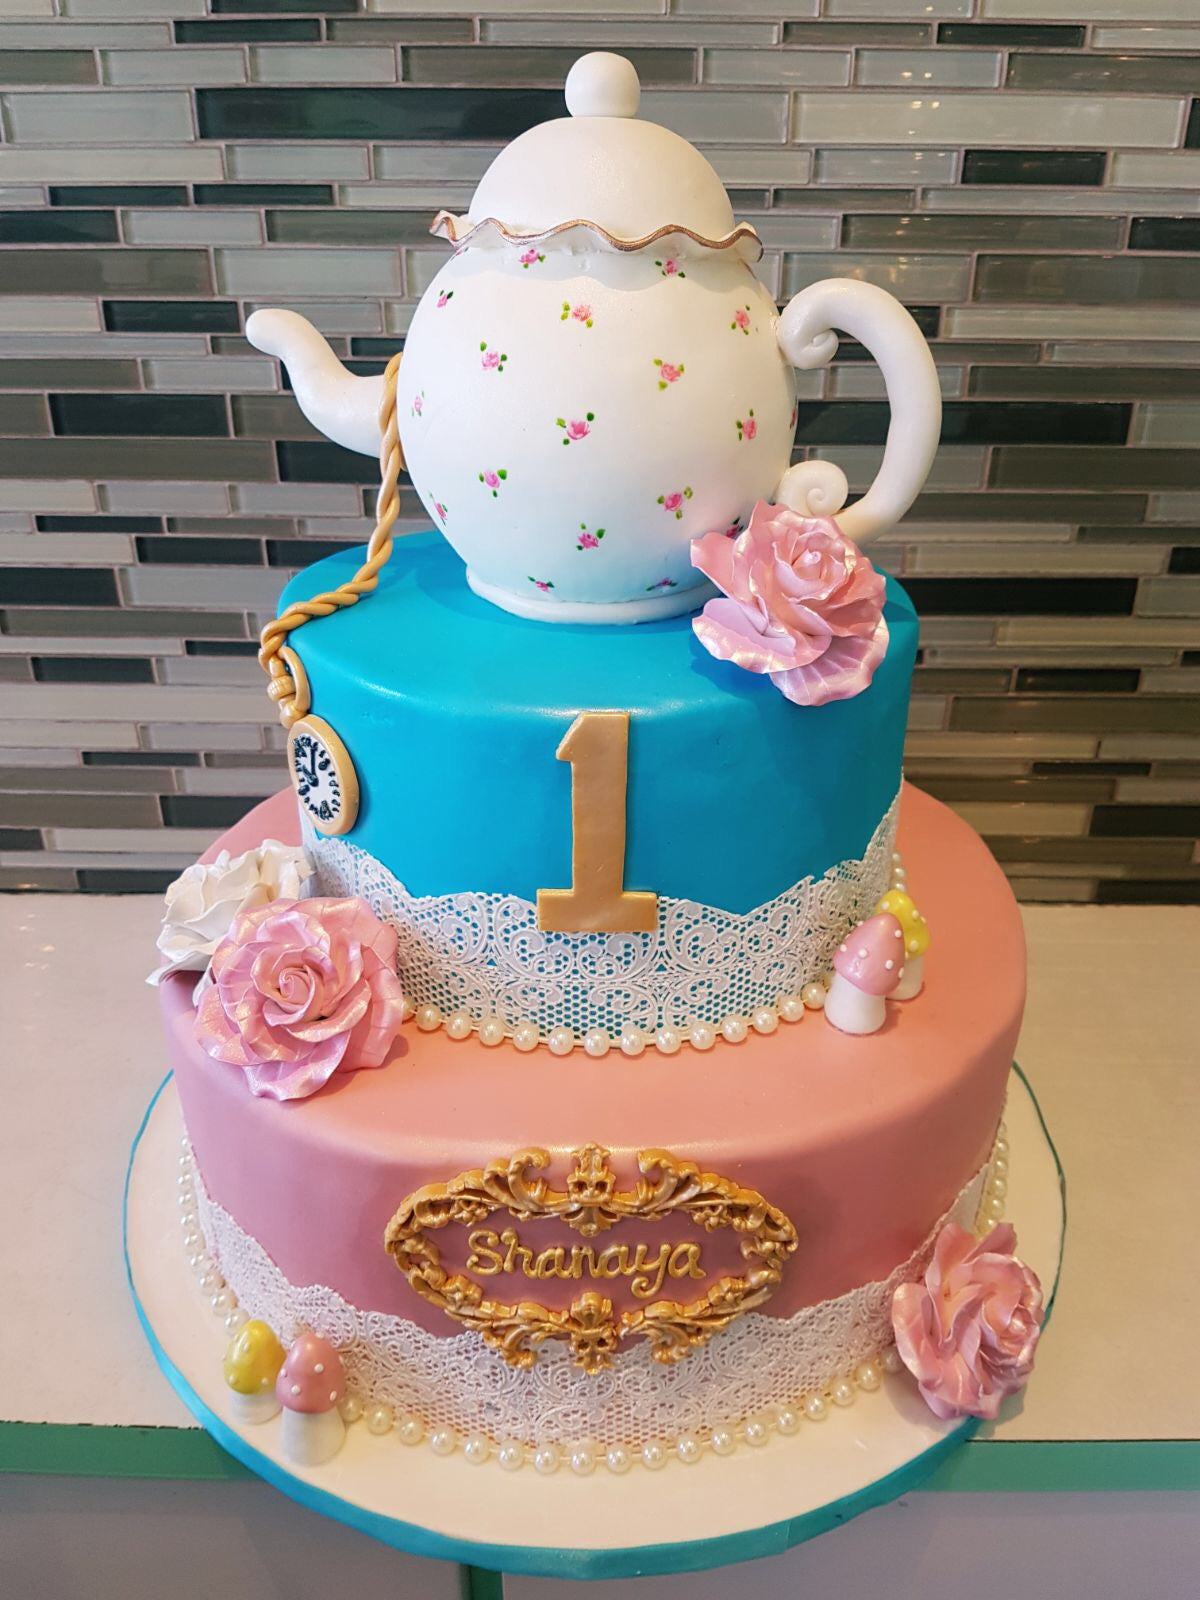 Fabulous Alice In Wonderland Birthday Cake Rashmis Bakery Personalised Birthday Cards Cominlily Jamesorg